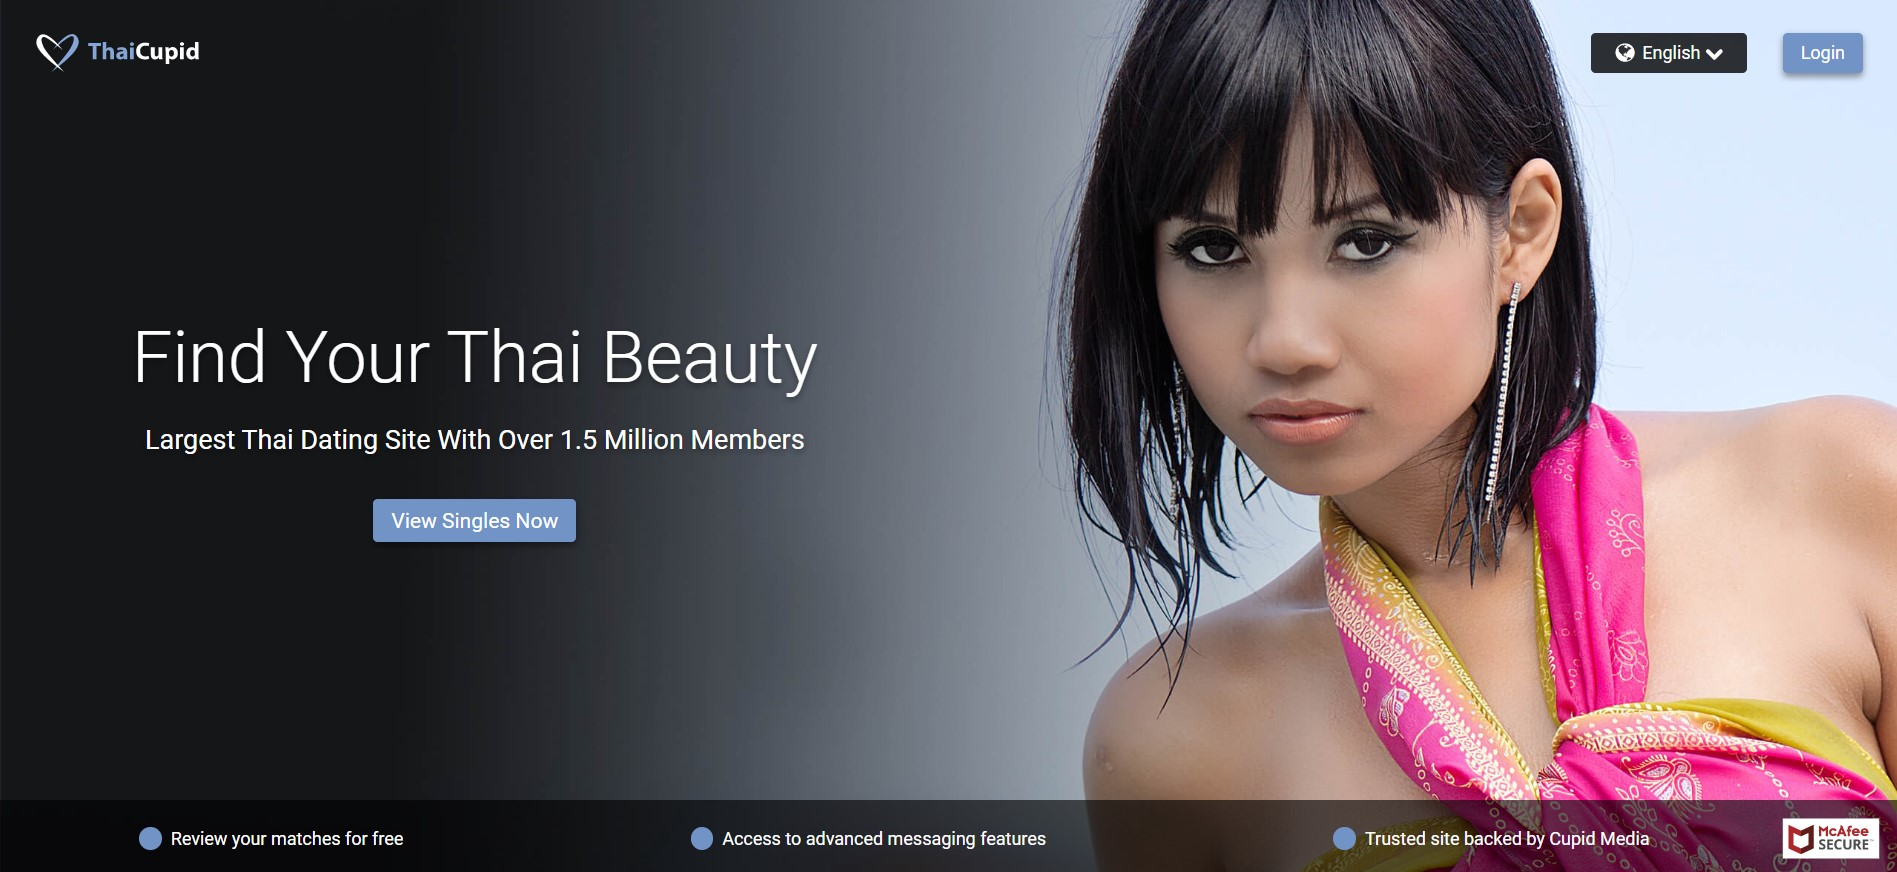 ThaiCupid main page